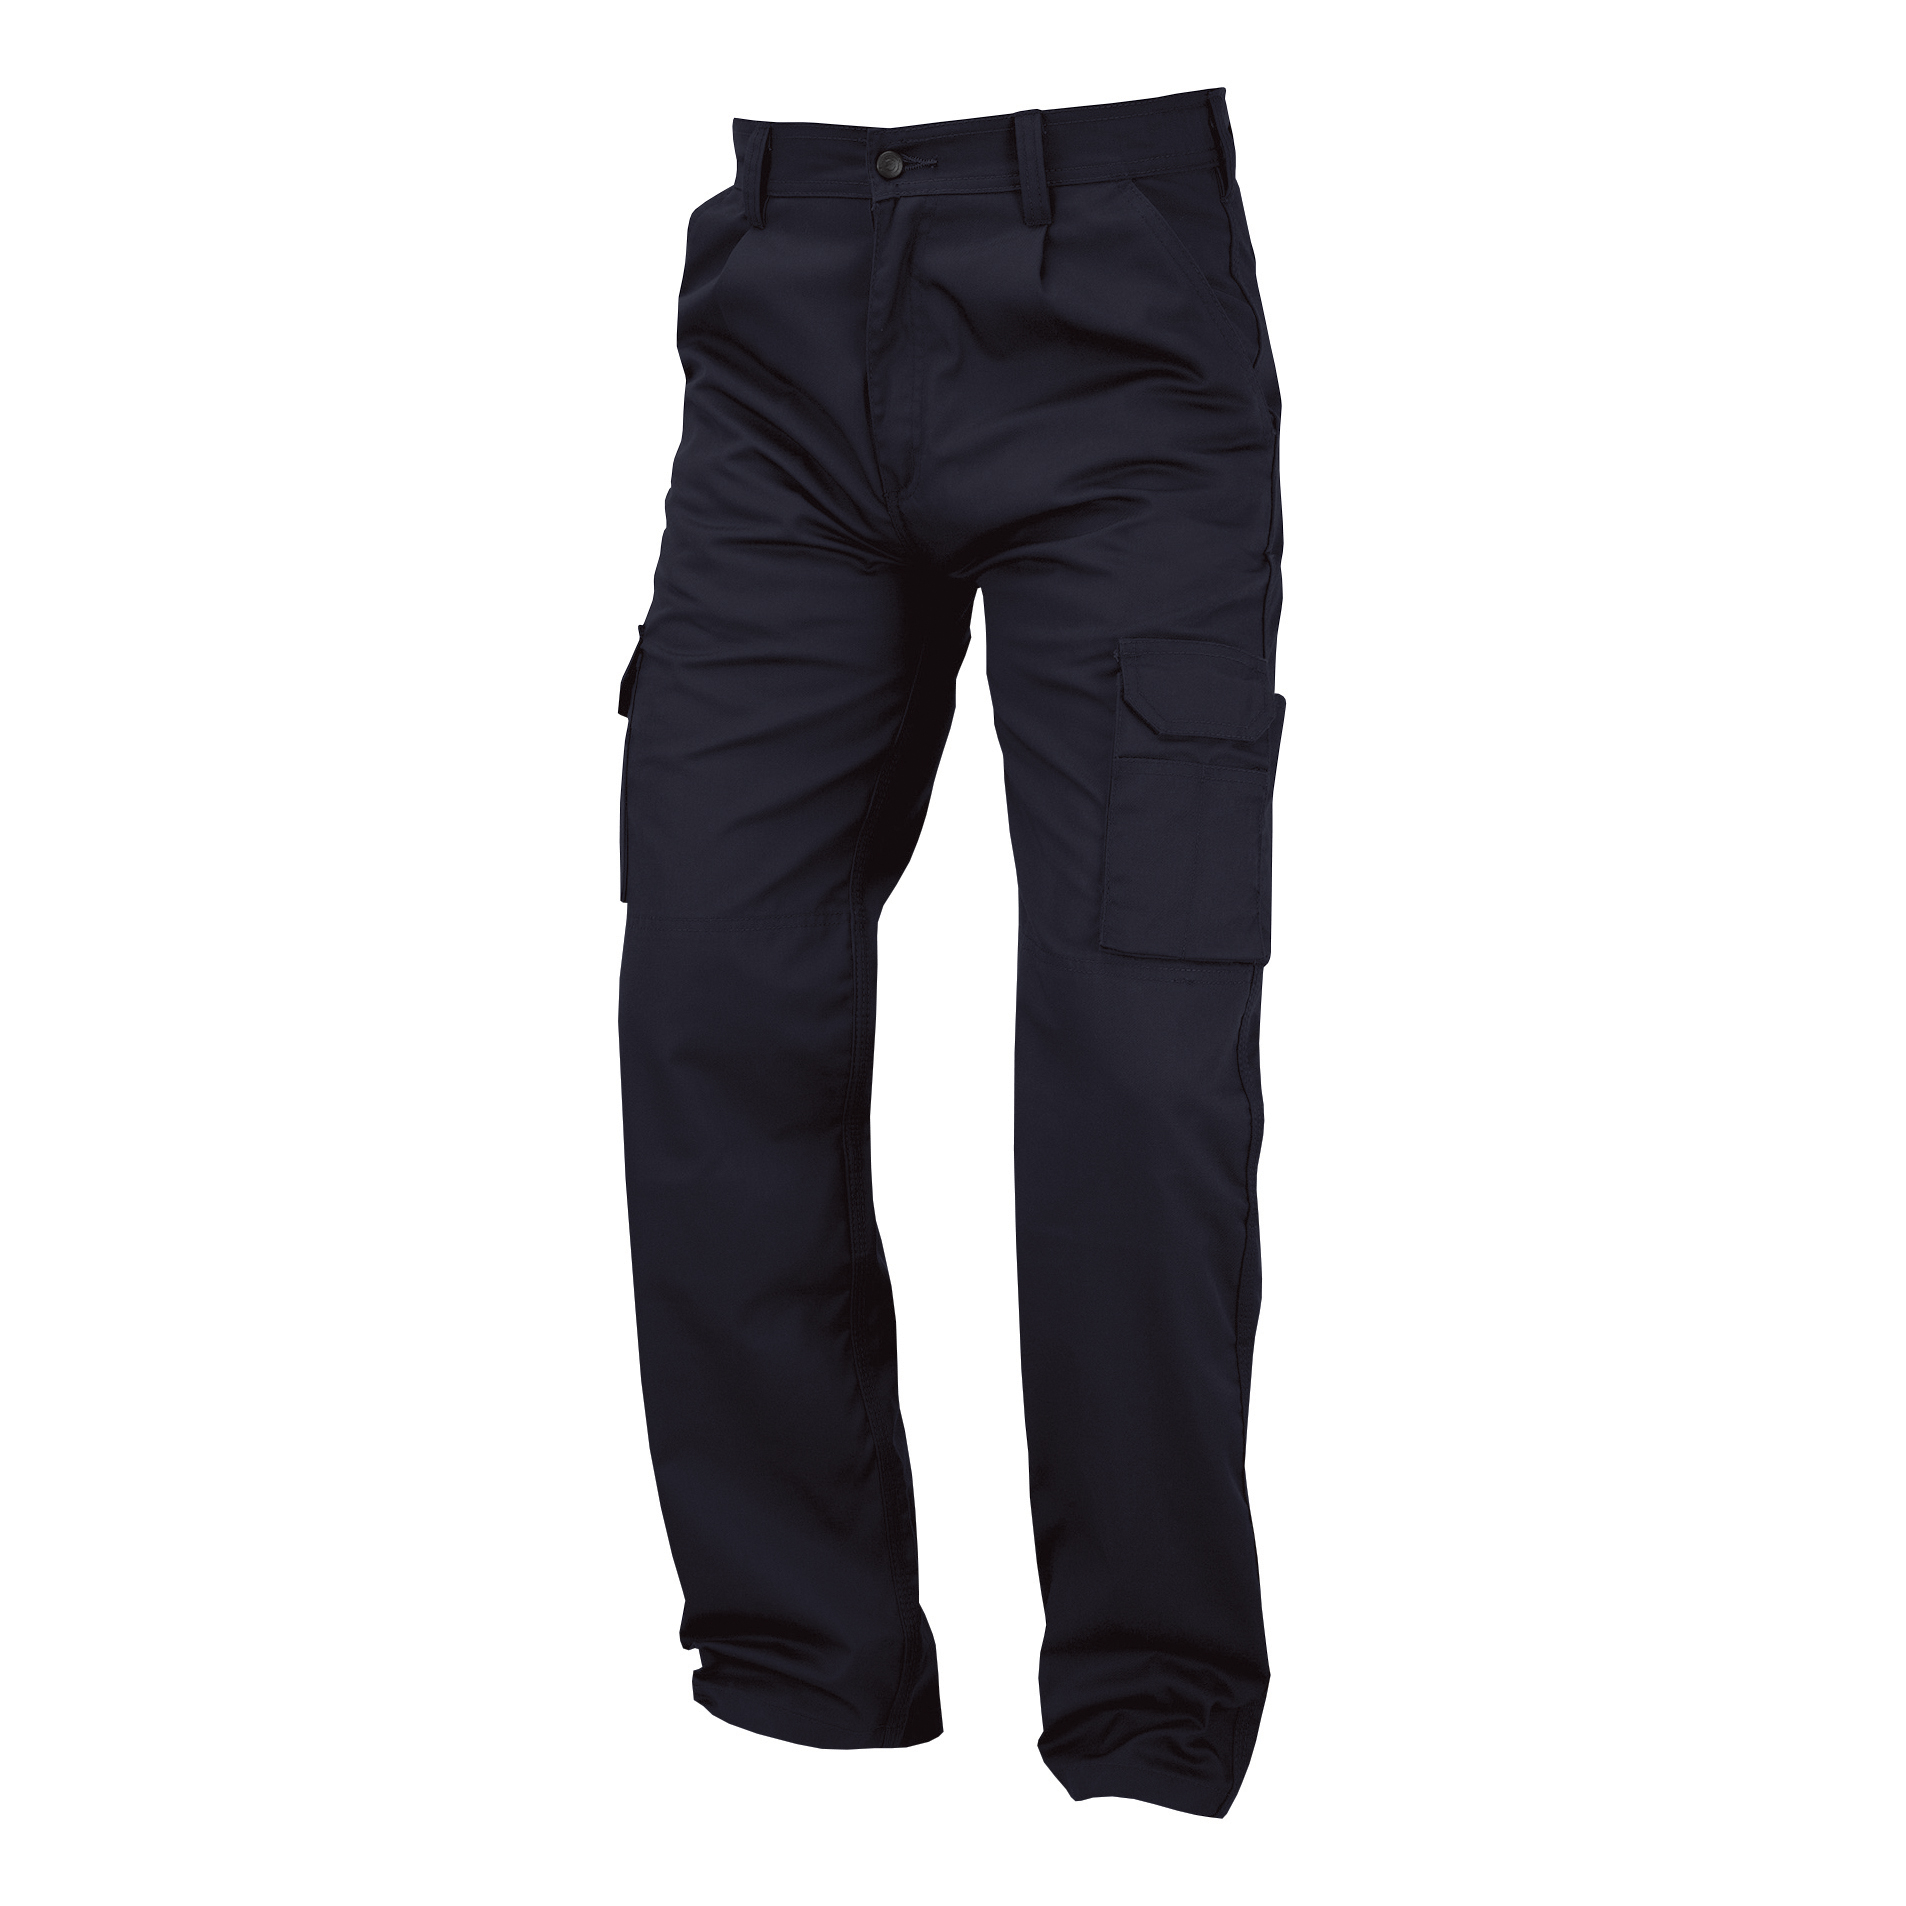 Combat / Cargo Combat Trousers Polycotton with Pockets 34in Regular Navy Blue Ref PCTHWN34 *1-3 Days Lead Time*